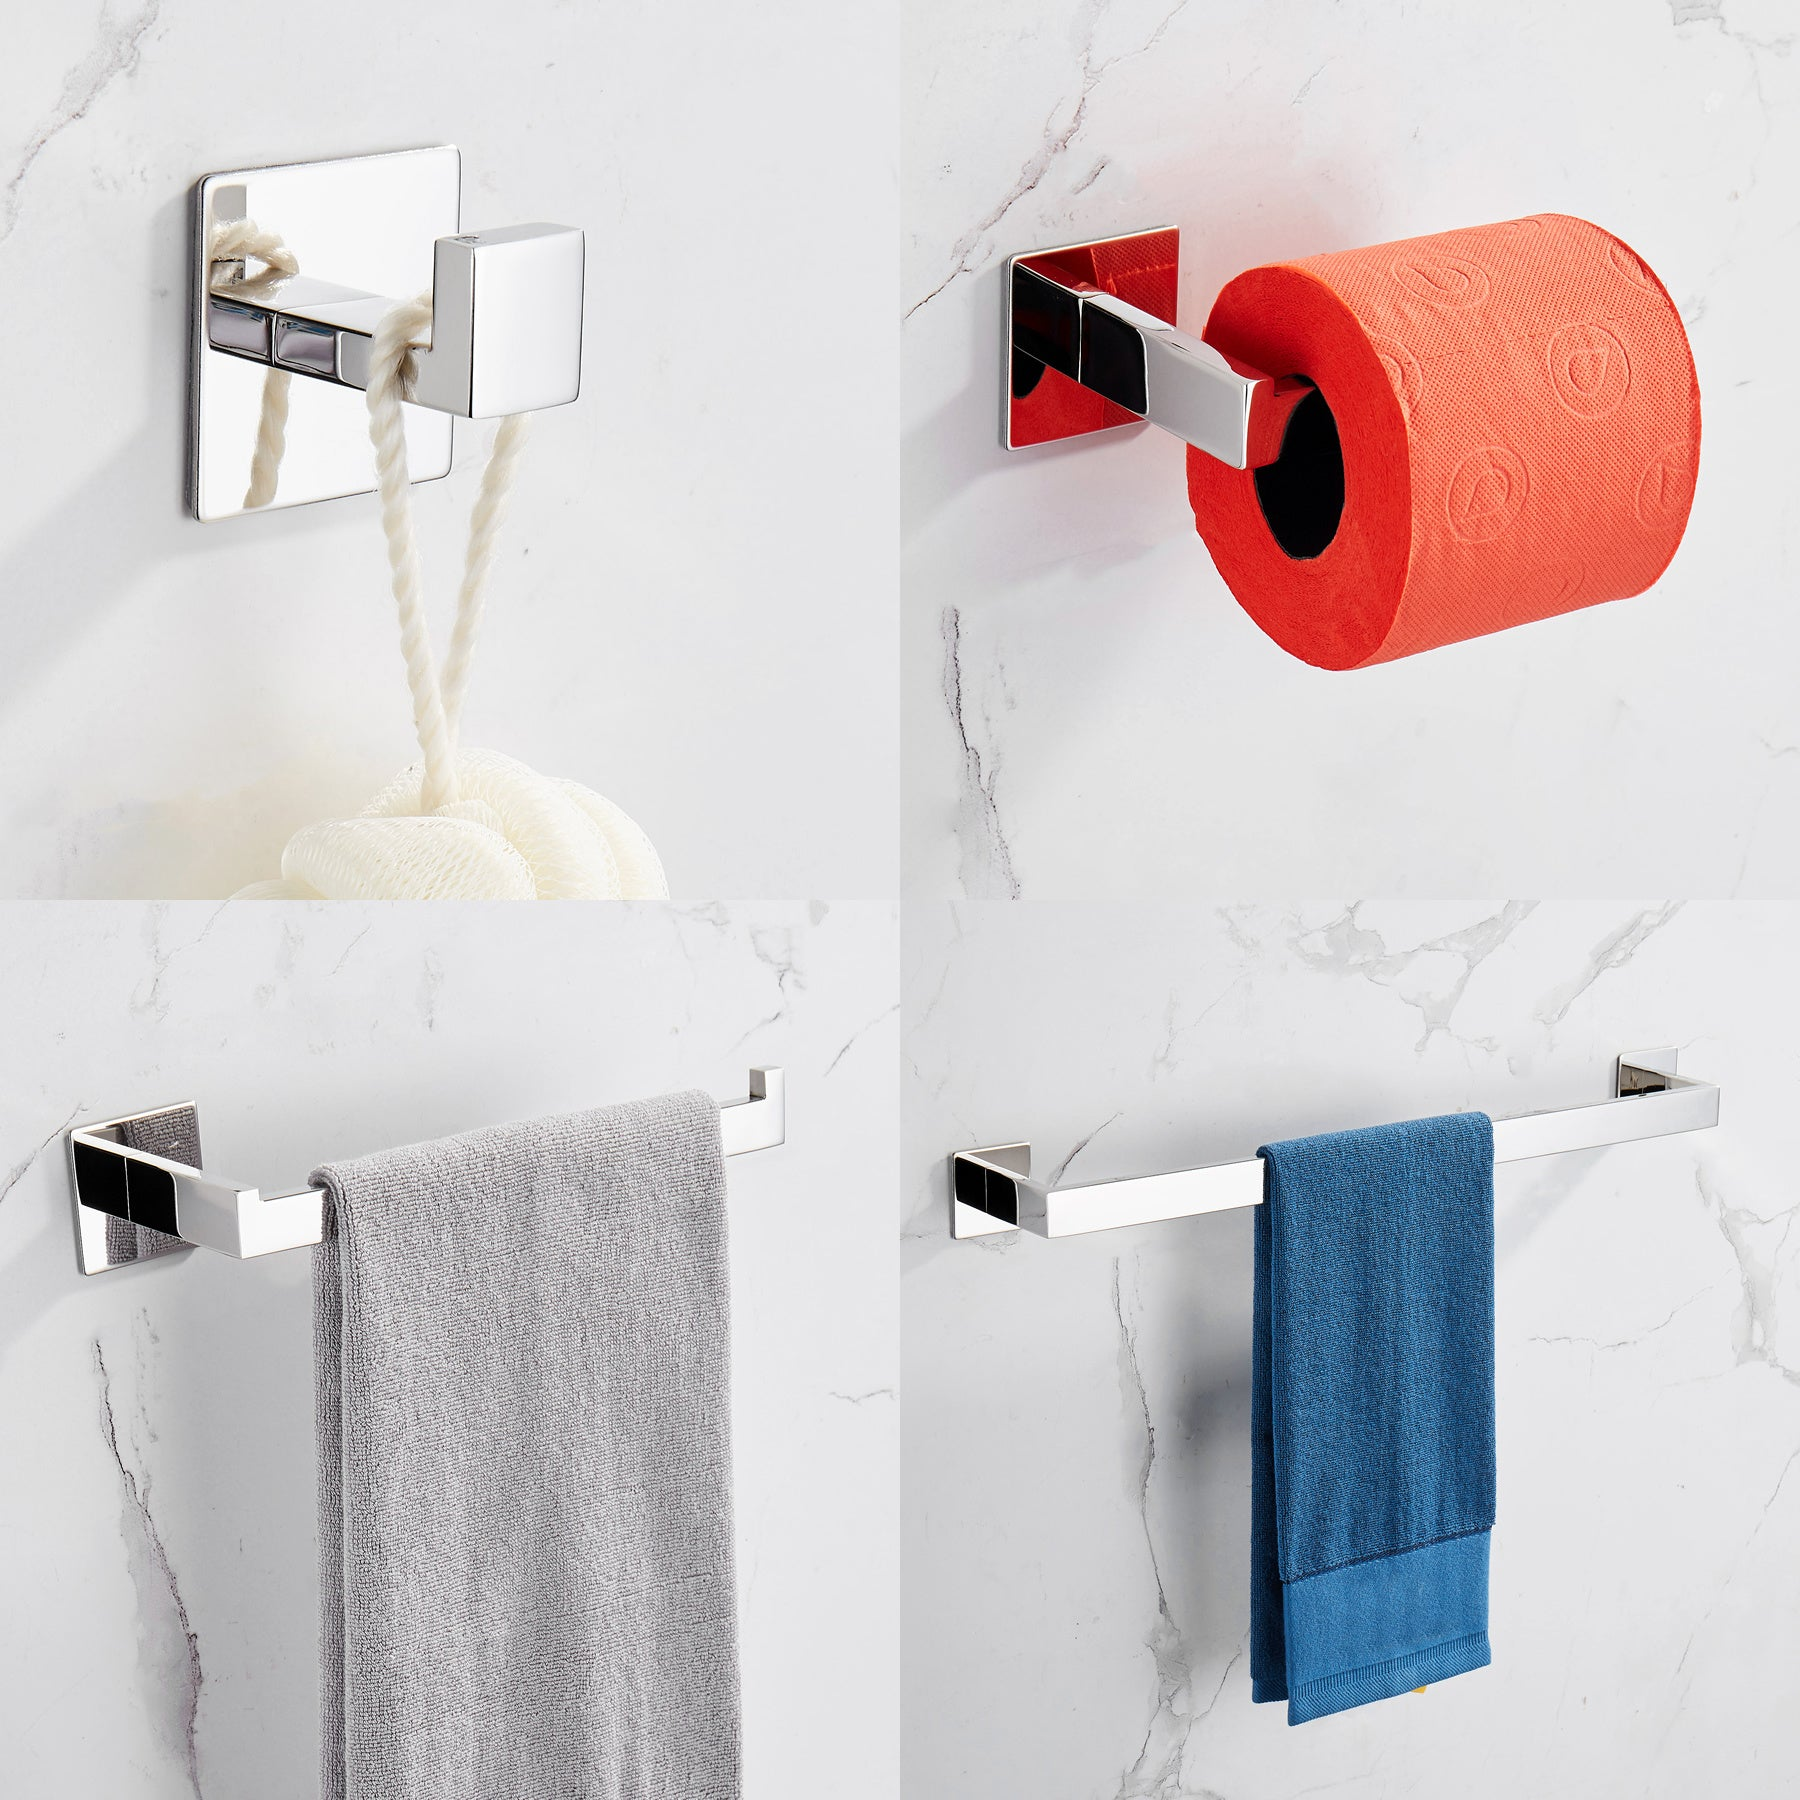 Strong Viscosity Adhesive 4 Pieces Bathroom Accessories Set Without Drilling Silver Brushed Towel Bar Set Holder Rack Robe Hook Tissue Toilet Paper Holder Rustproof 304 Stainless Steel  YJ